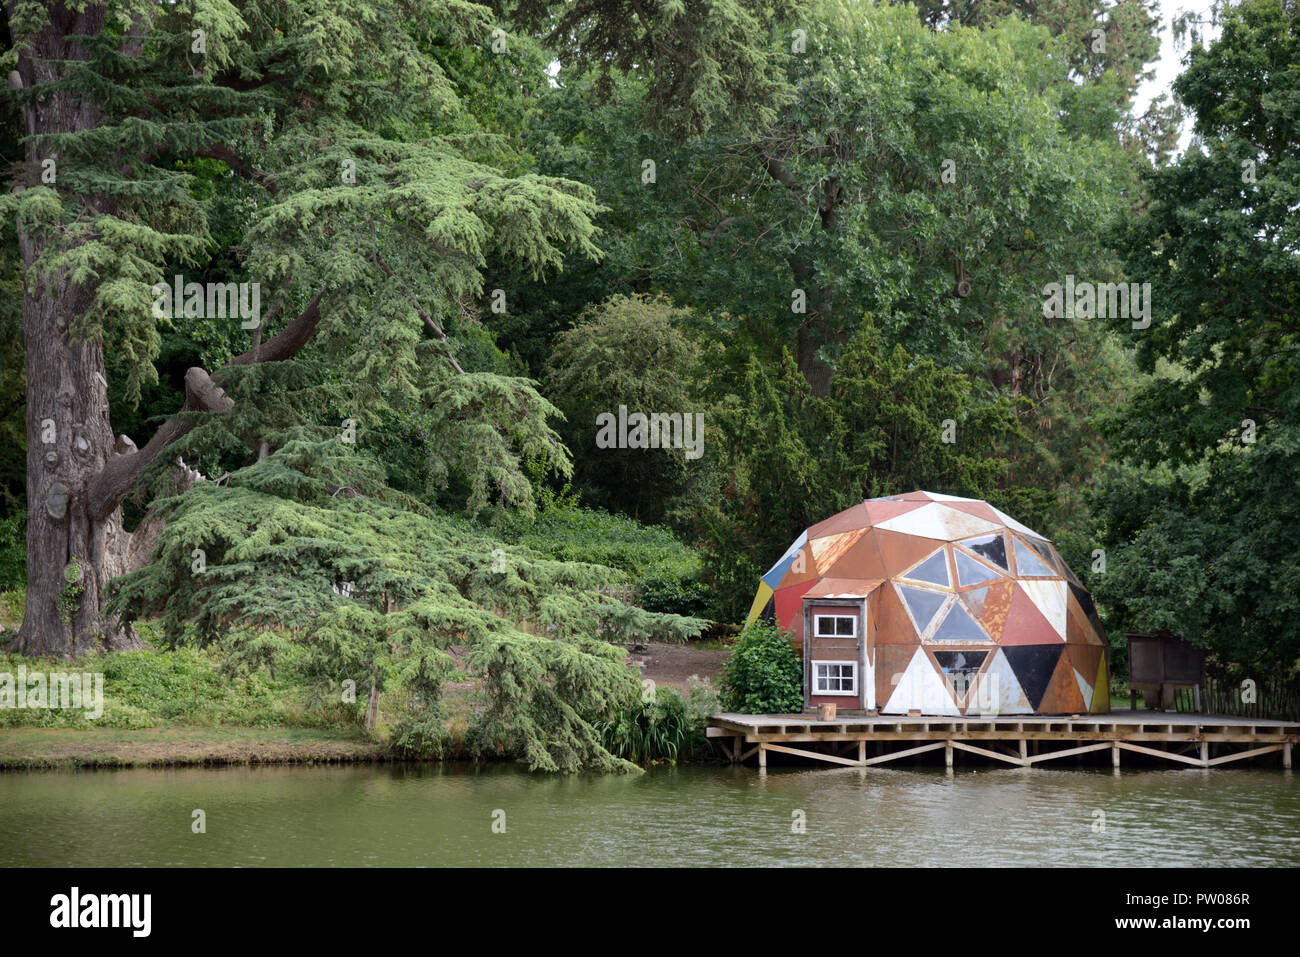 Geodesic Dome Home on Edge of Lake and Forest or in Woods at Compton Verney Warwickshire England - Stock Image